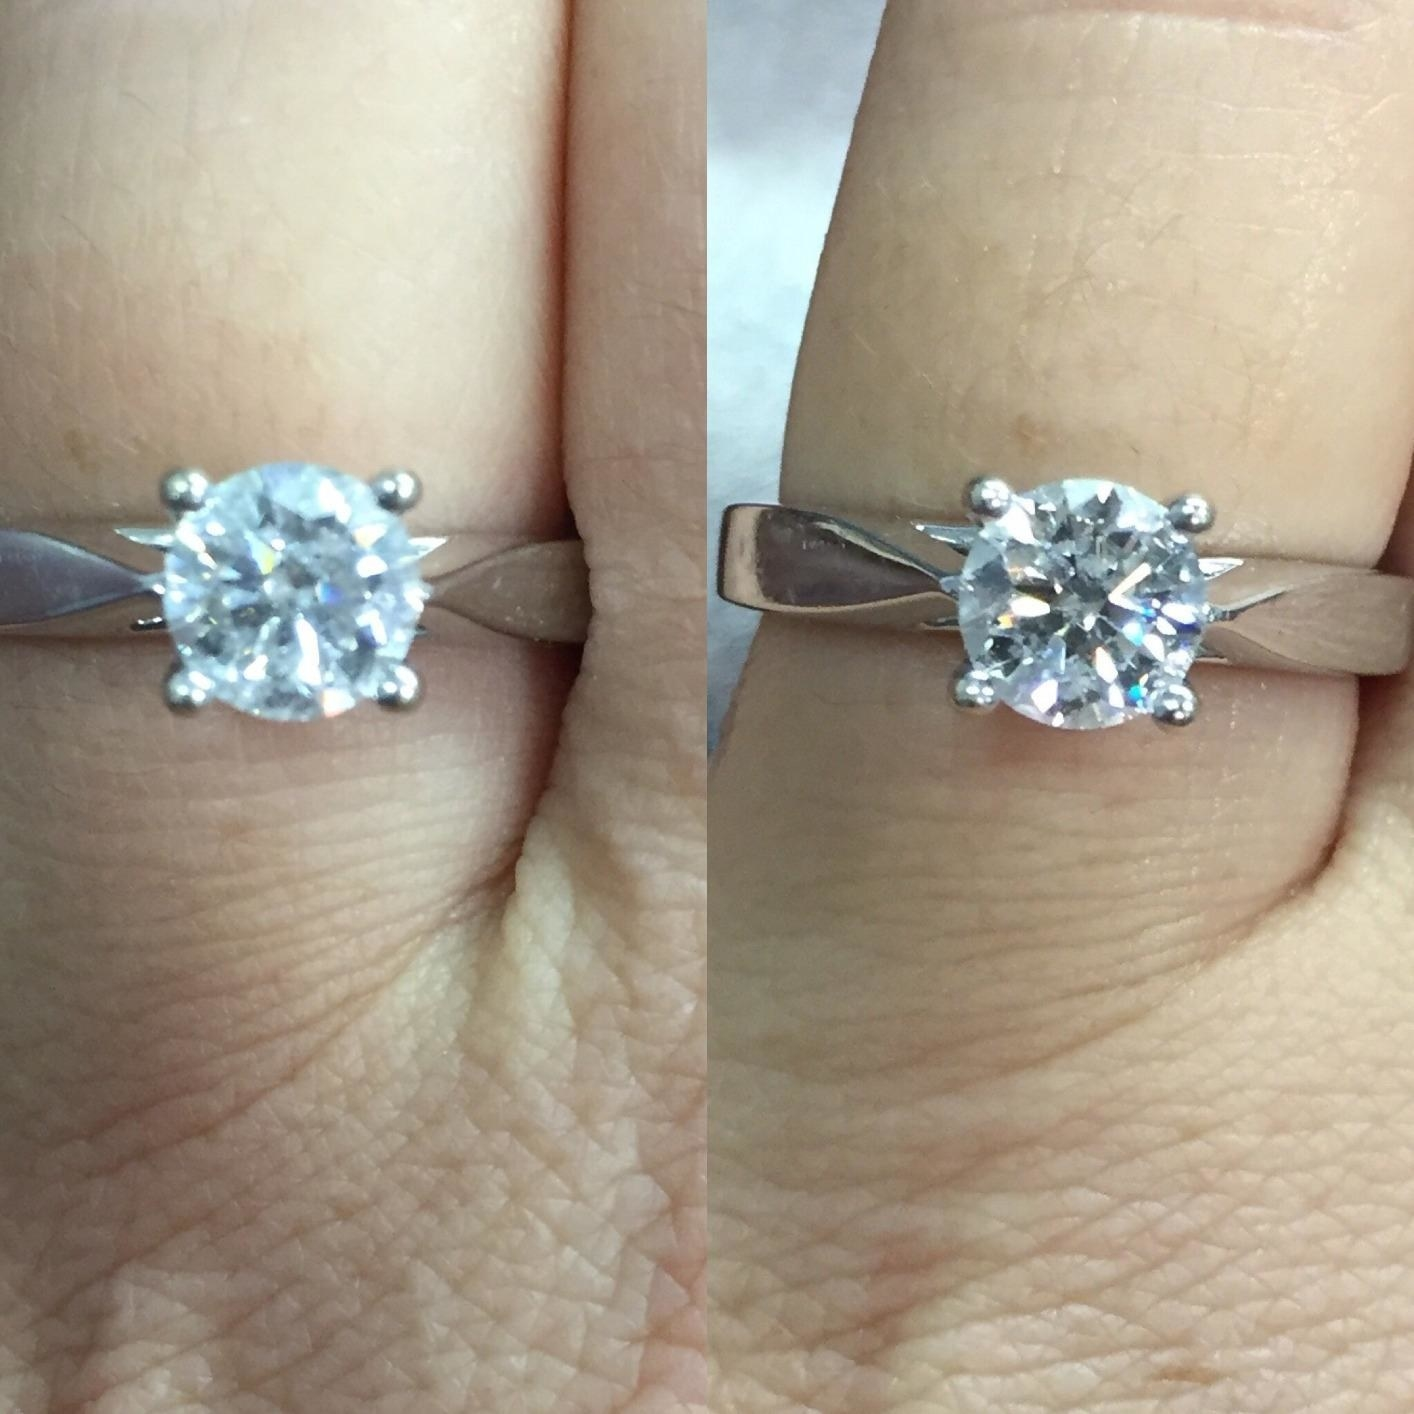 A reviewer's diamond solitaire: cloudy before cleaning and brilliant with clearer facets after